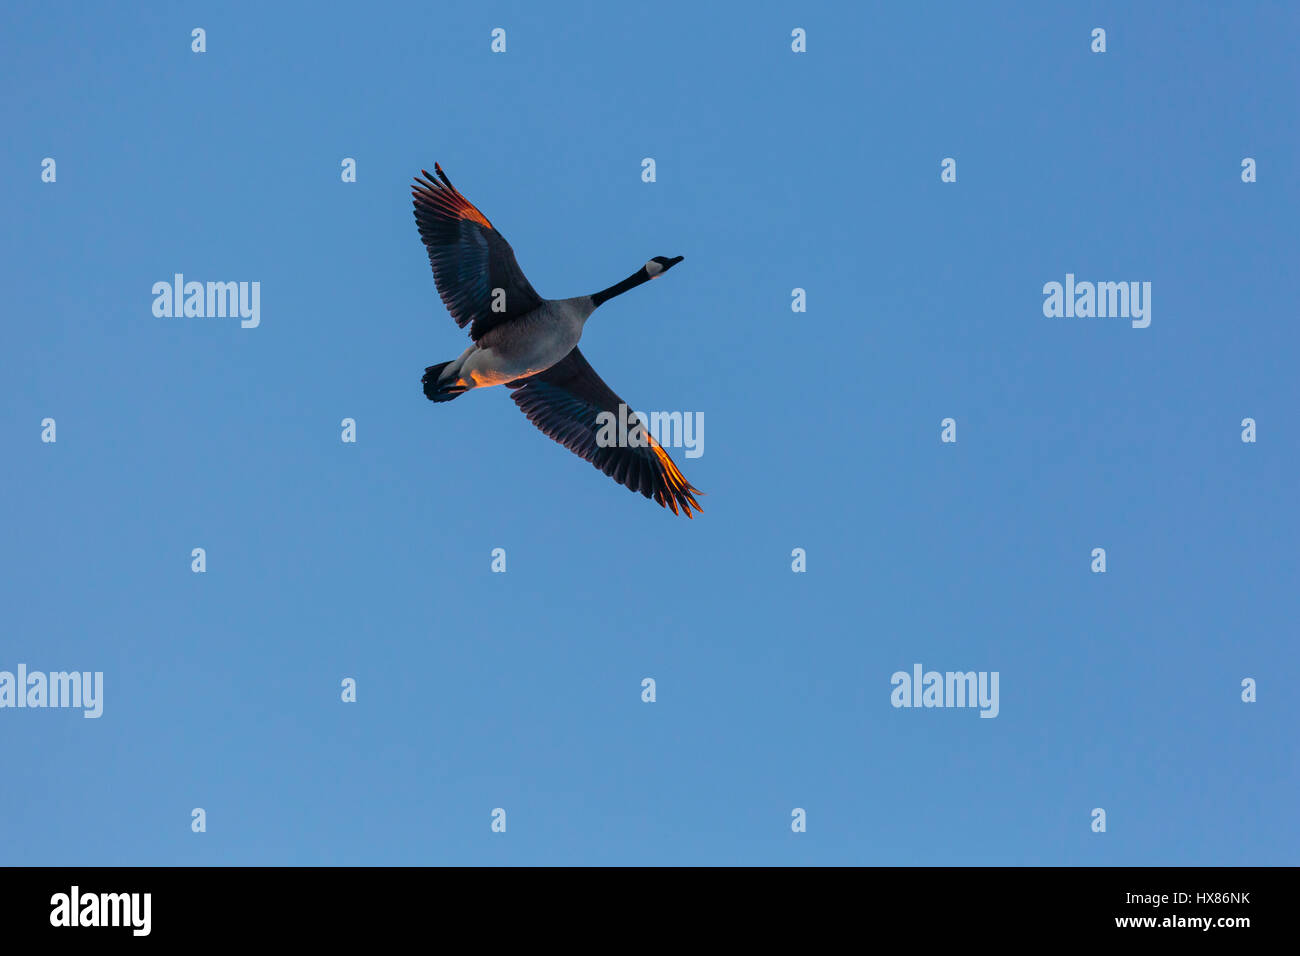 Cananda Goose Flying - Stock Image